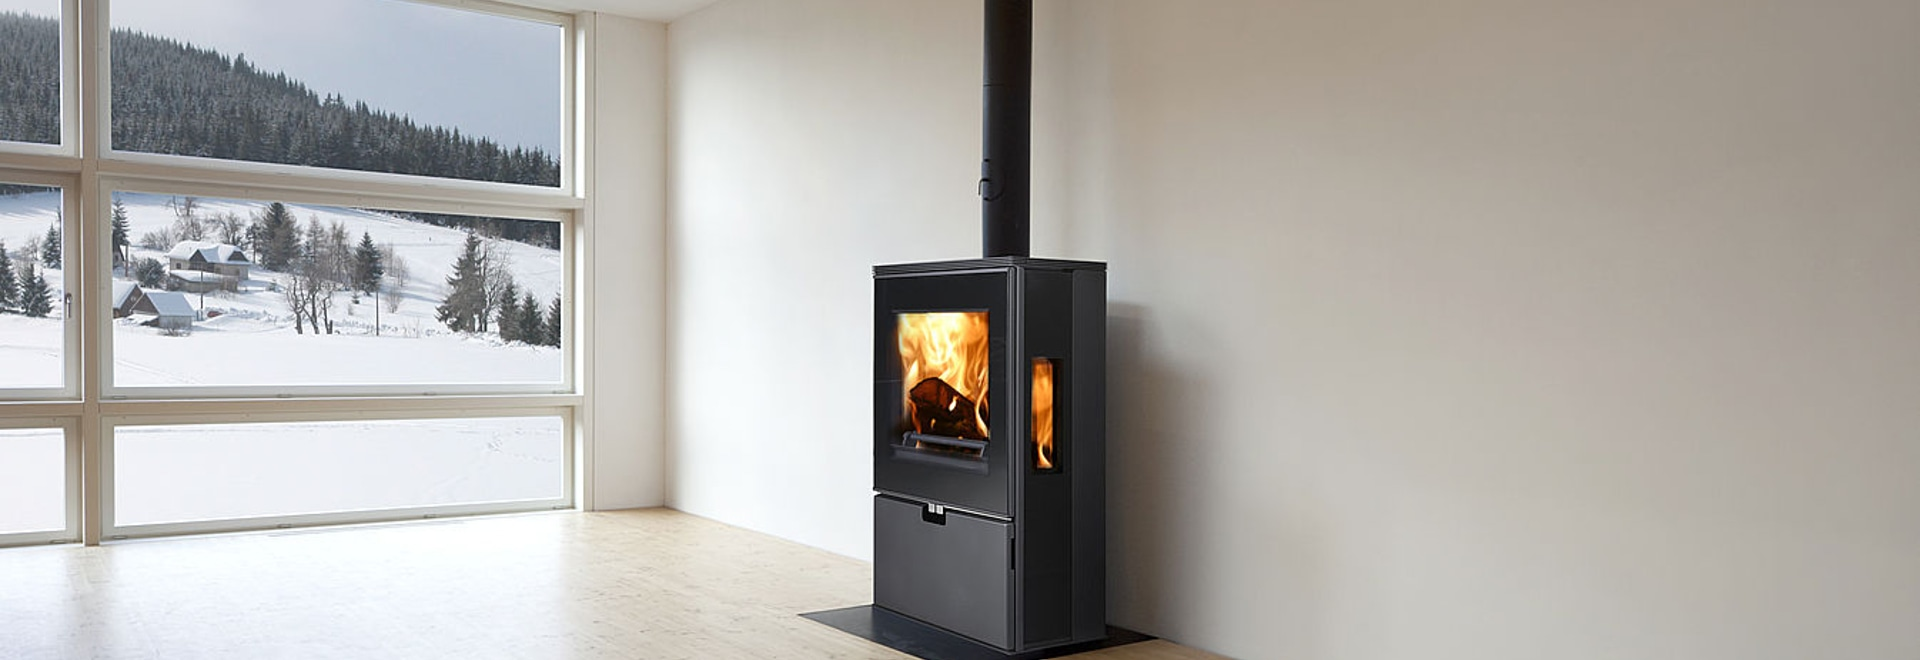 New Free Standing Stove Wiesbaden Thorma Vyroba K S